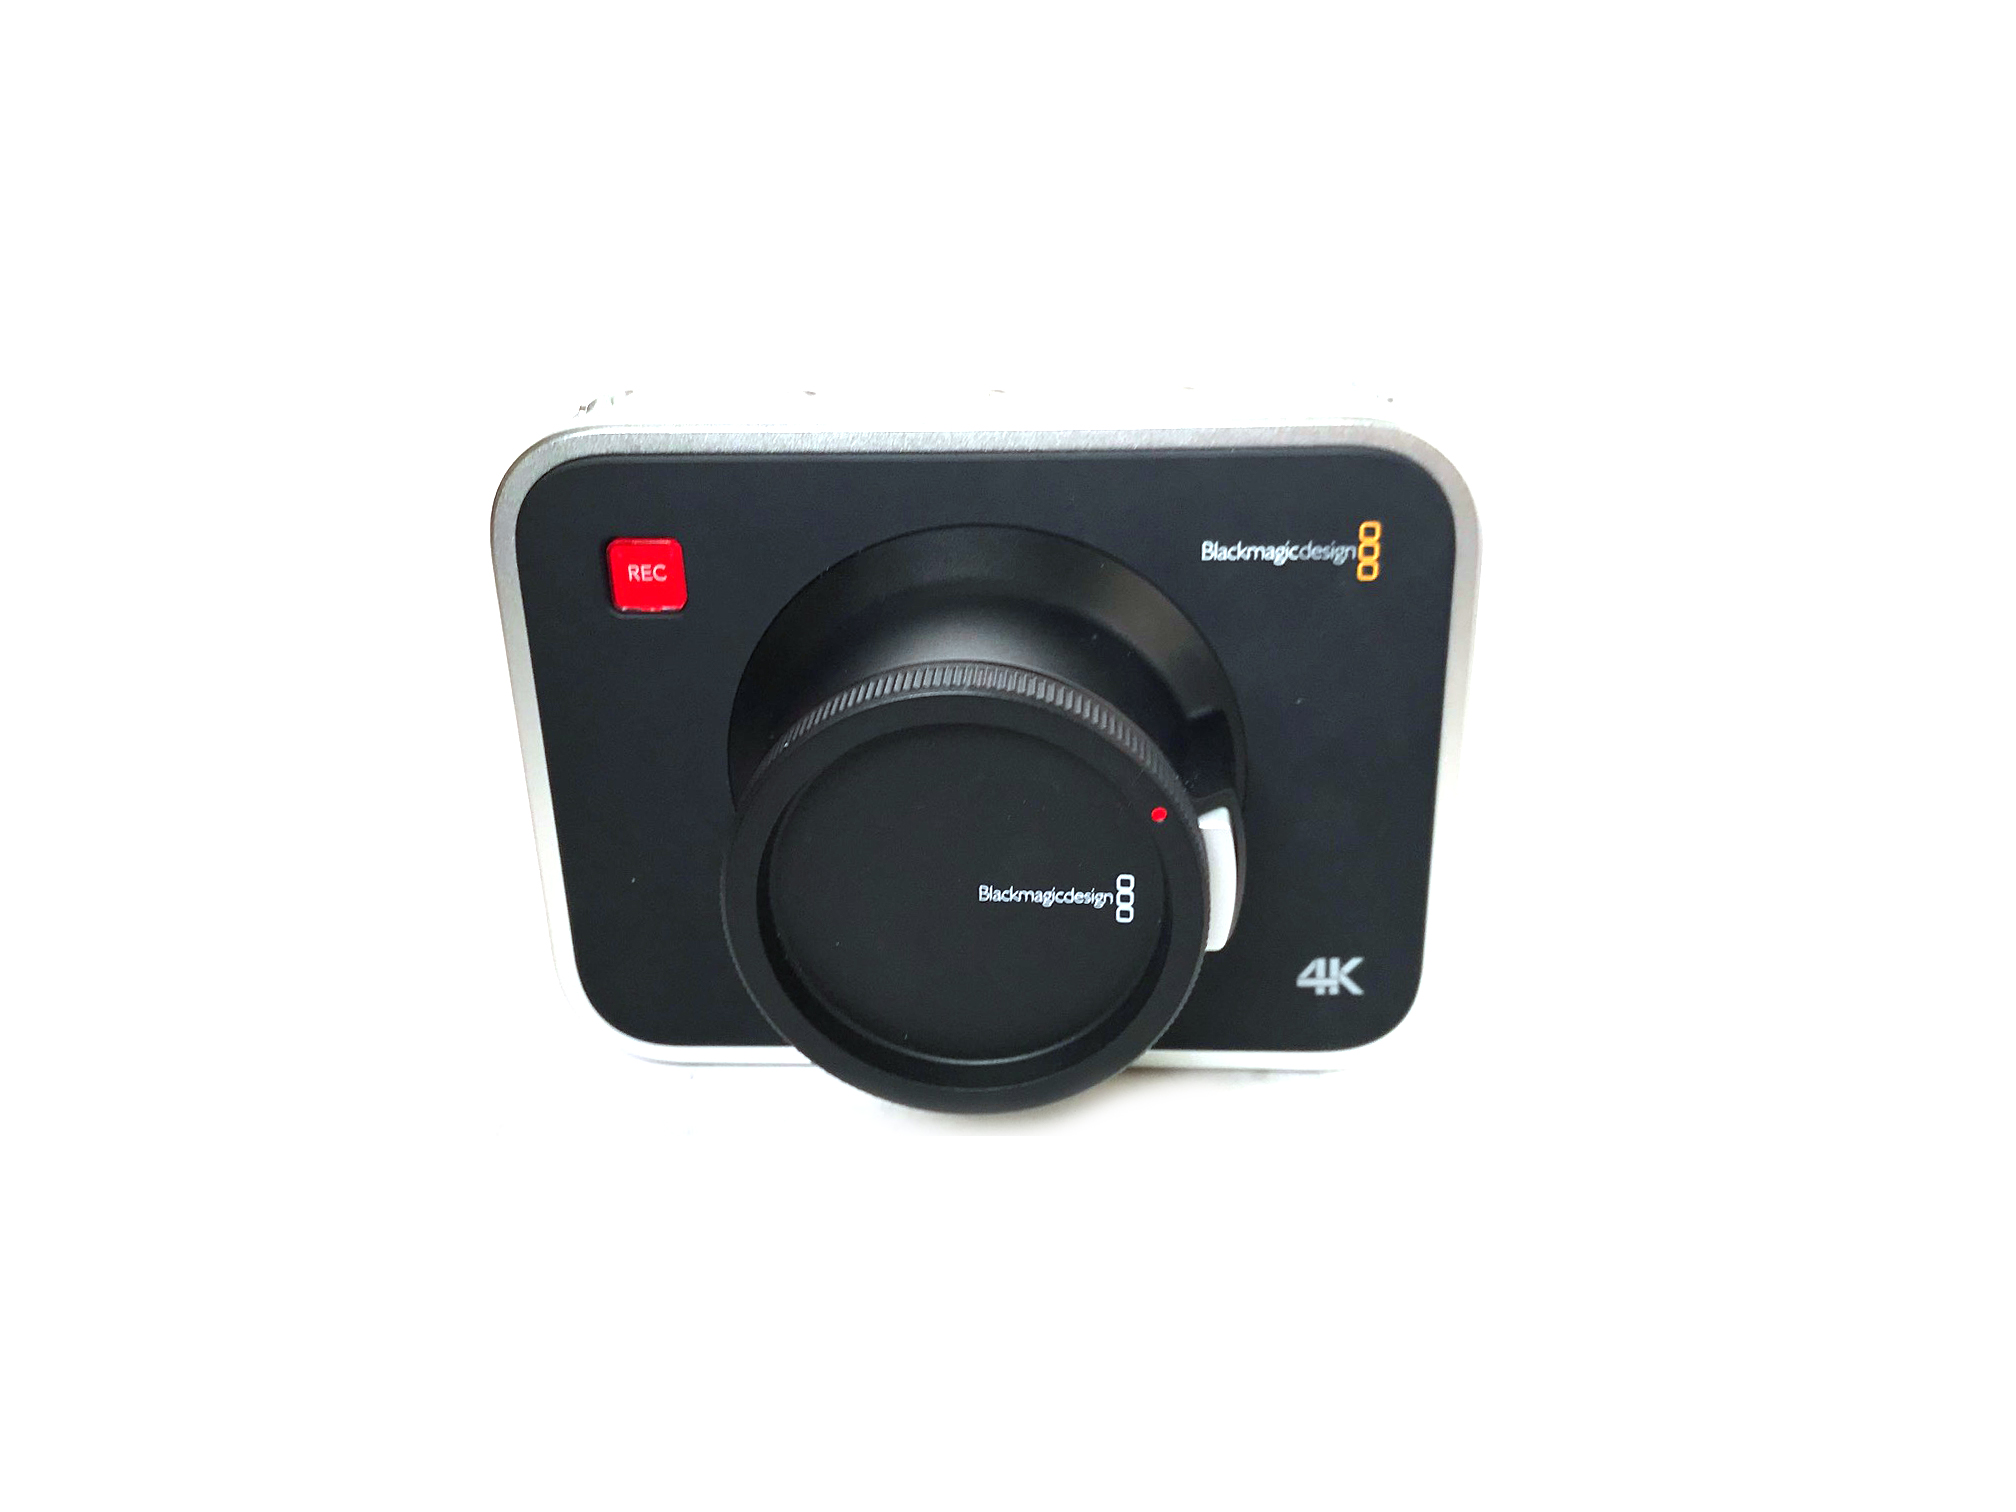 Blackmagic Design 4K Camera - Image #1